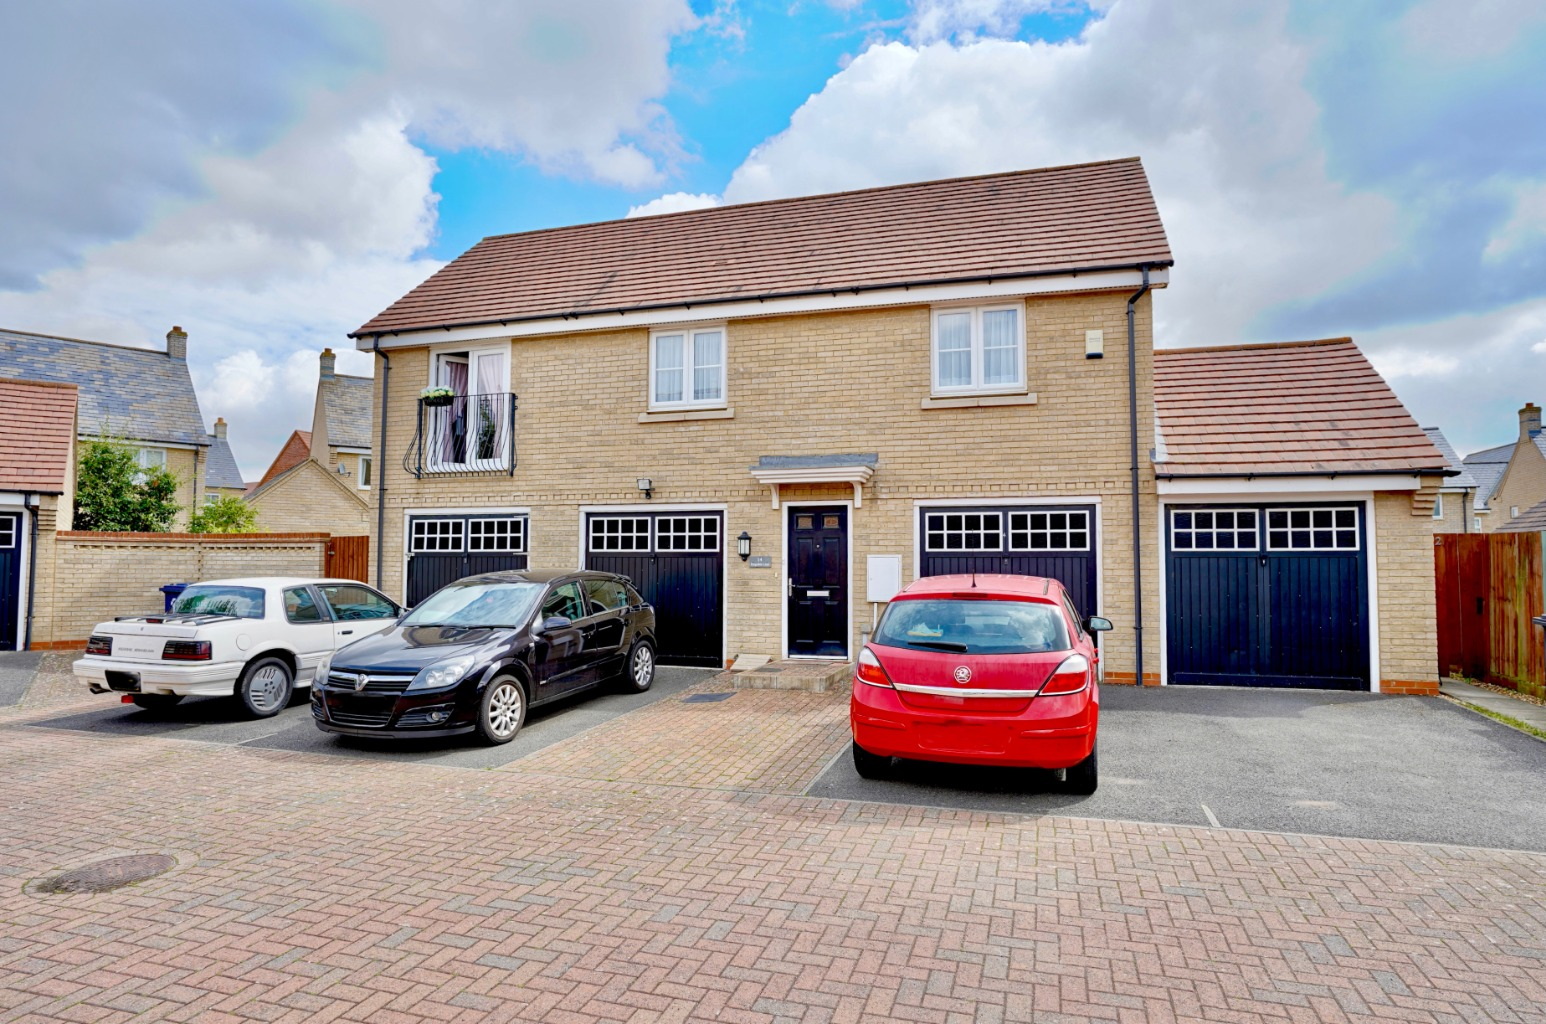 2 bed detached house for sale in Hogsden Leys, St. Neots  - Property Image 1